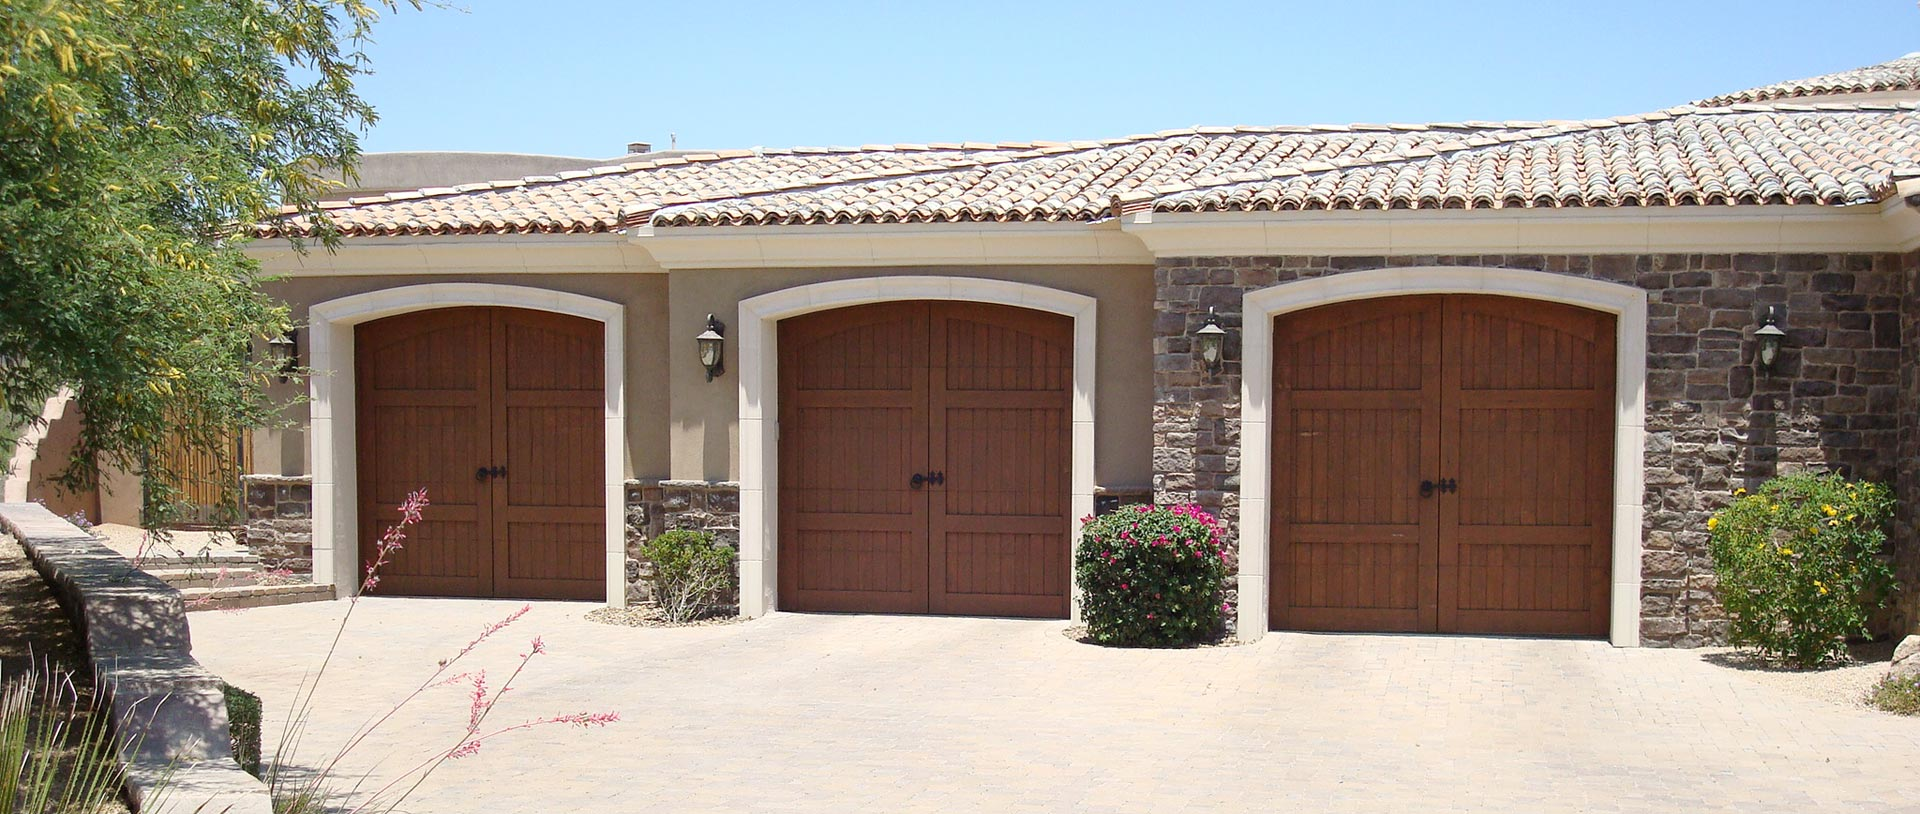 814 #1468B7 Some Of Our Complete Projects wallpaper Complete Garage Doors 36251920